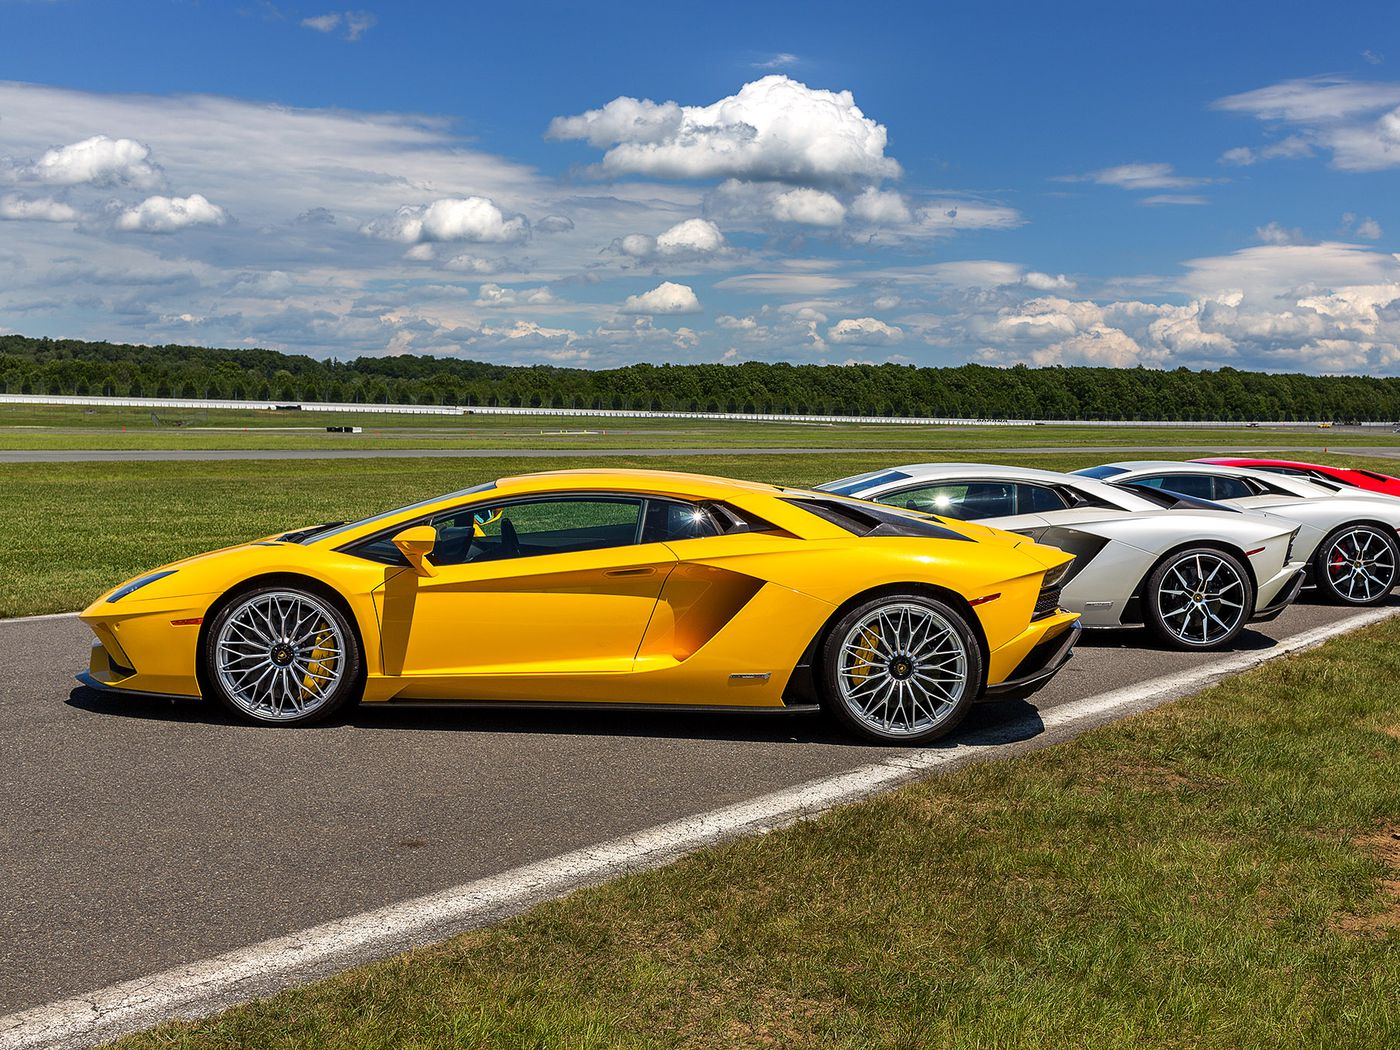 The Lamborghini Aventador S Is Music For An Ultra Luxury Car Lovers Go Back Gt Gallery Electrical Circuit Symbols Ears Verge